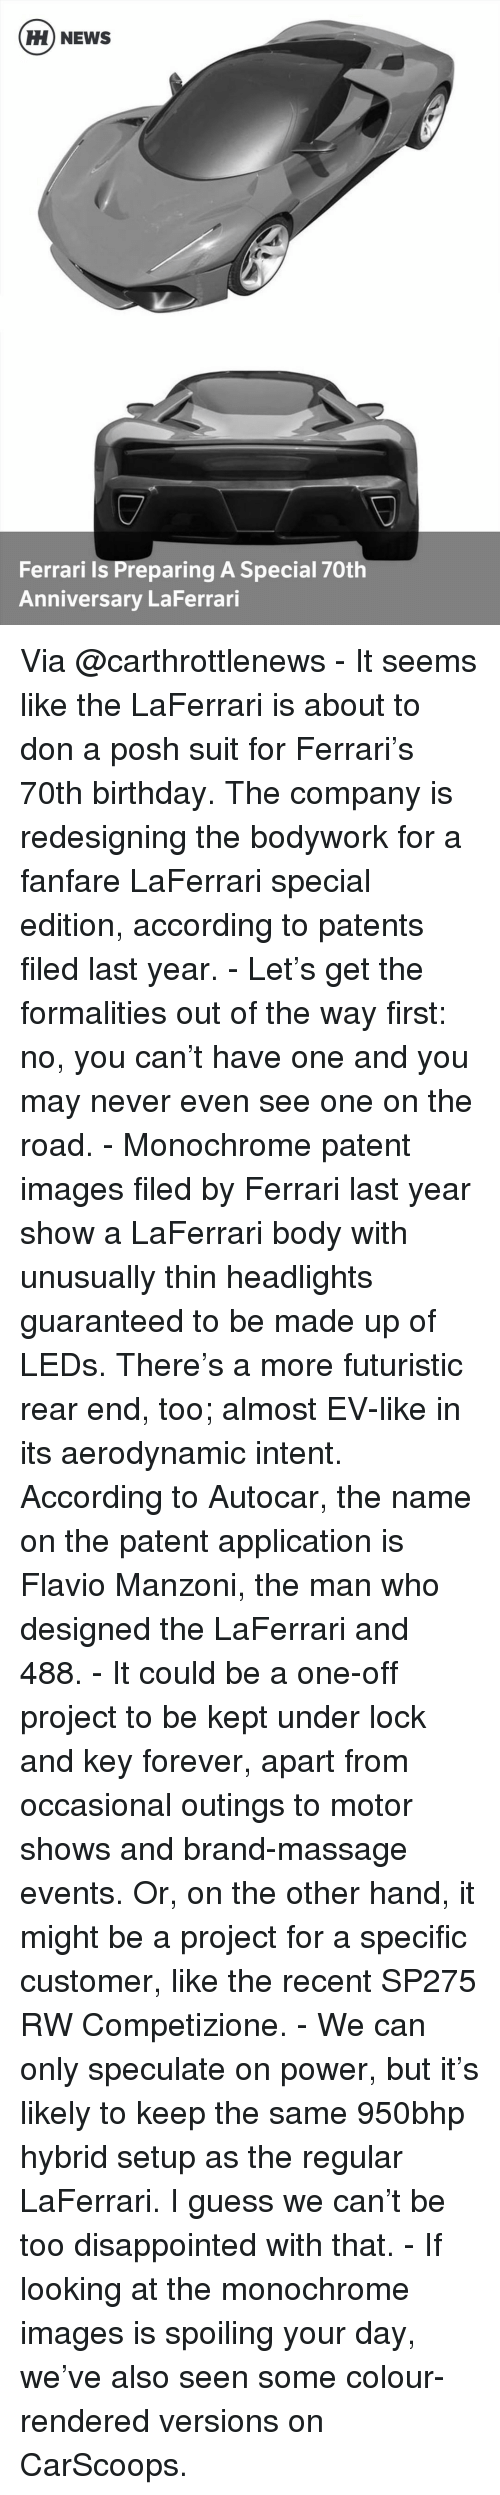 massaging: HH NEWS  Ferrari is Preparing A Special 70th  Anniversary LaFerrari Via @carthrottlenews - It seems like the LaFerrari is about to don a posh suit for Ferrari's 70th birthday. The company is redesigning the bodywork for a fanfare LaFerrari special edition, according to patents filed last year. - Let's get the formalities out of the way first: no, you can't have one and you may never even see one on the road. - Monochrome patent images filed by Ferrari last year show a LaFerrari body with unusually thin headlights guaranteed to be made up of LEDs. There's a more futuristic rear end, too; almost EV-like in its aerodynamic intent. According to Autocar, the name on the patent application is Flavio Manzoni, the man who designed the LaFerrari and 488. - It could be a one-off project to be kept under lock and key forever, apart from occasional outings to motor shows and brand-massage events. Or, on the other hand, it might be a project for a specific customer, like the recent SP275 RW Competizione. - We can only speculate on power, but it's likely to keep the same 950bhp hybrid setup as the regular LaFerrari. I guess we can't be too disappointed with that. - If looking at the monochrome images is spoiling your day, we've also seen some colour-rendered versions on CarScoops.